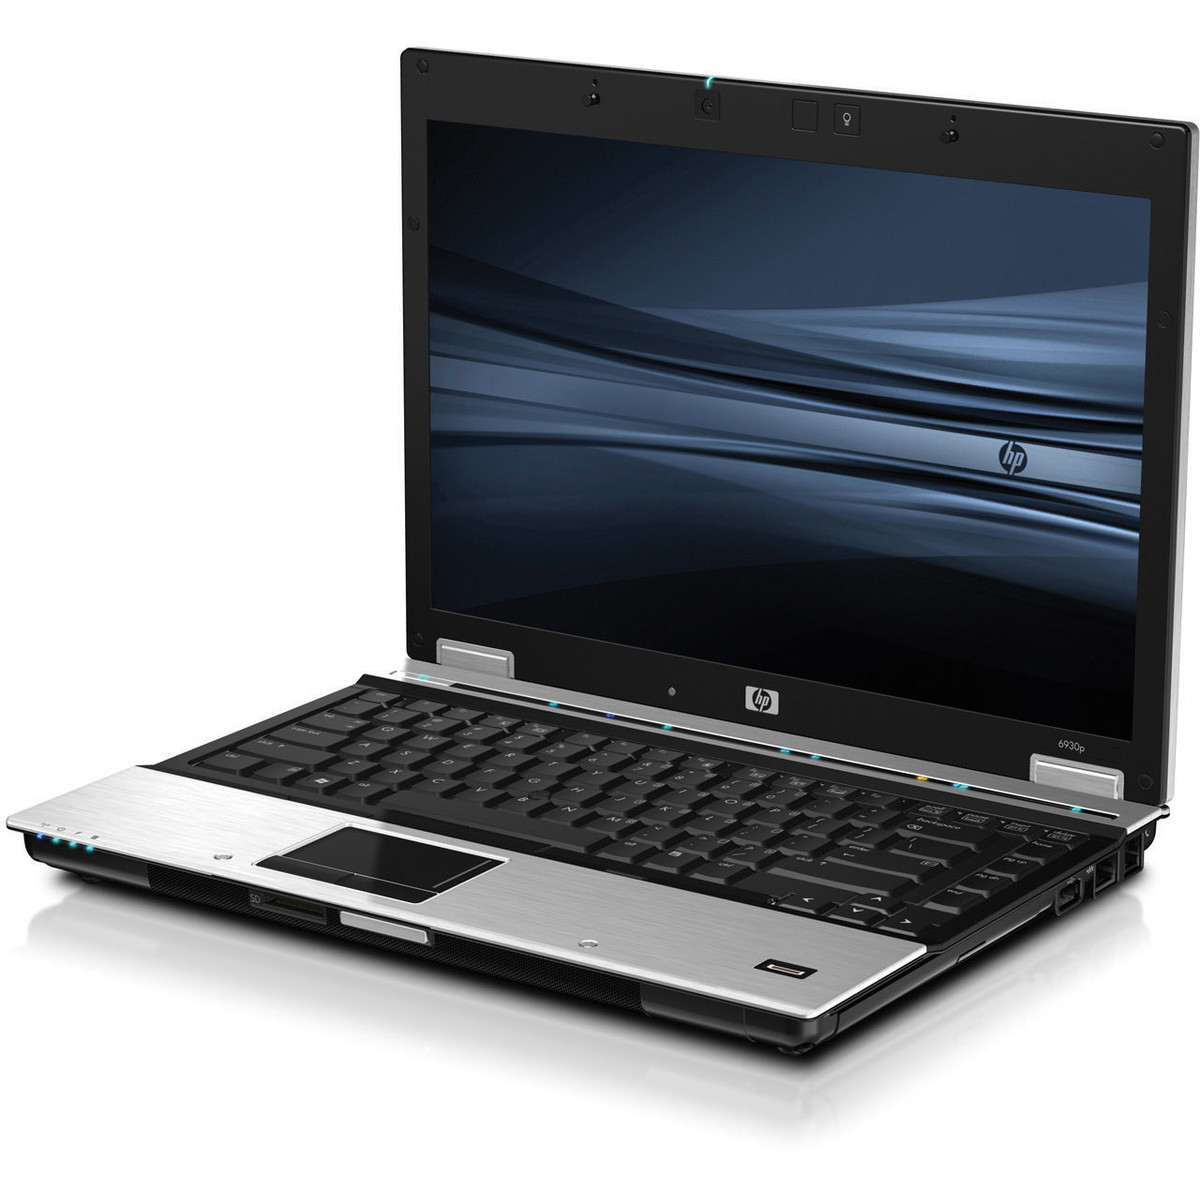 Laptop second hand elitebook 6930p core 2 duo p8600 2.4